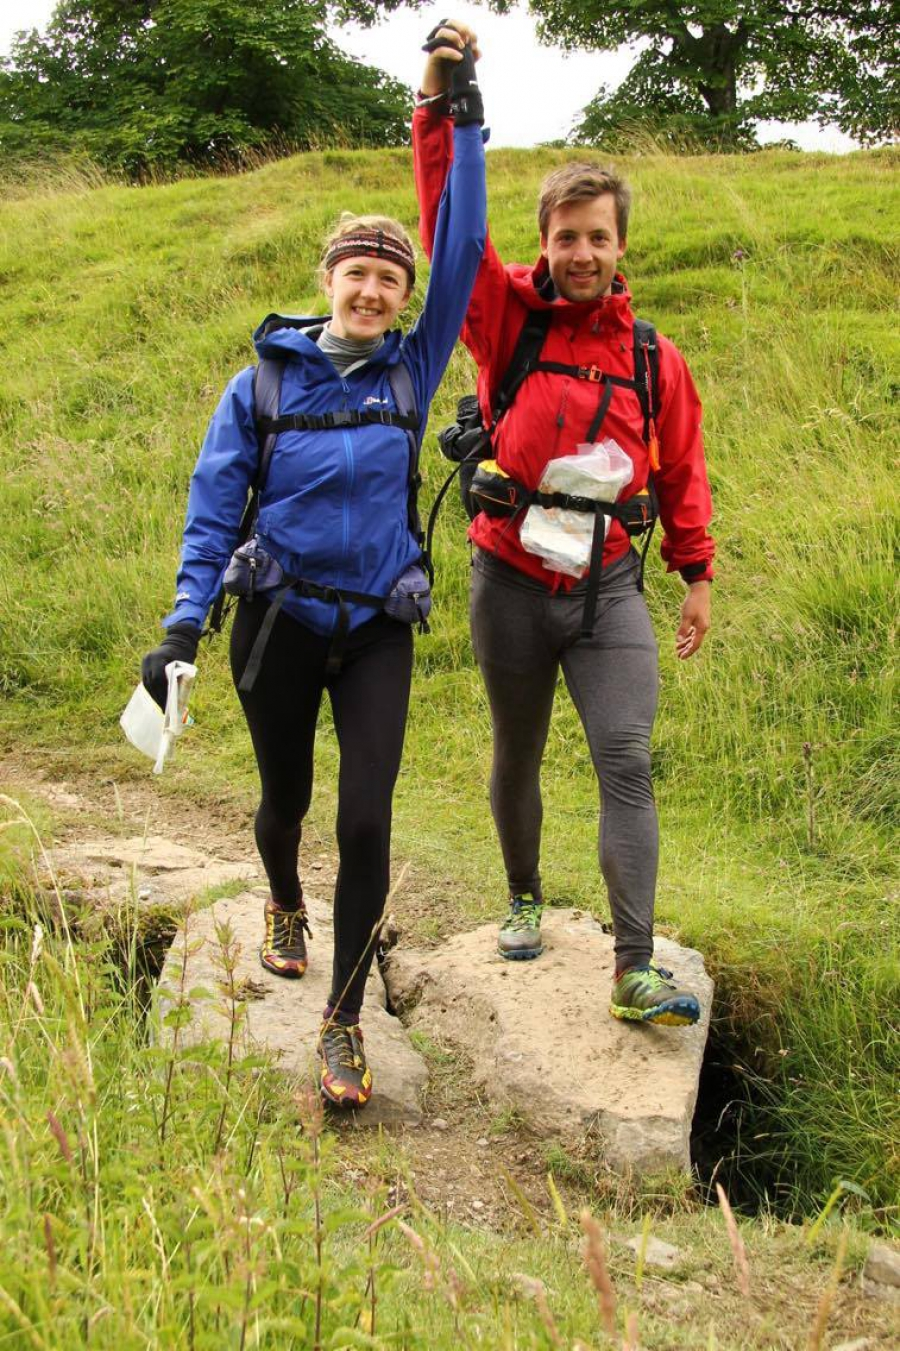 Beth & Alex's fundraising Mountain Challenge